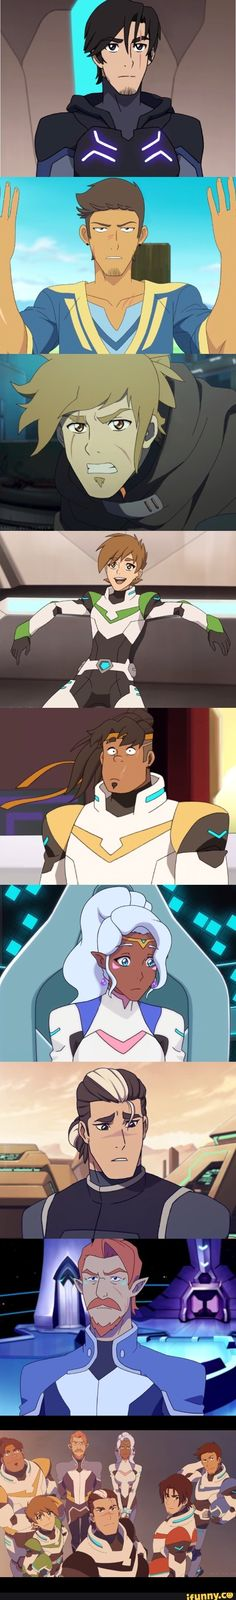 shiro looks like kanan jarrus and i am Here For That Form Voltron, Voltron Ships, Voltron Klance, Voltron Force, Lance Mcclain, Voltron Fanart, Space Cat, Kids Shows, Paladin